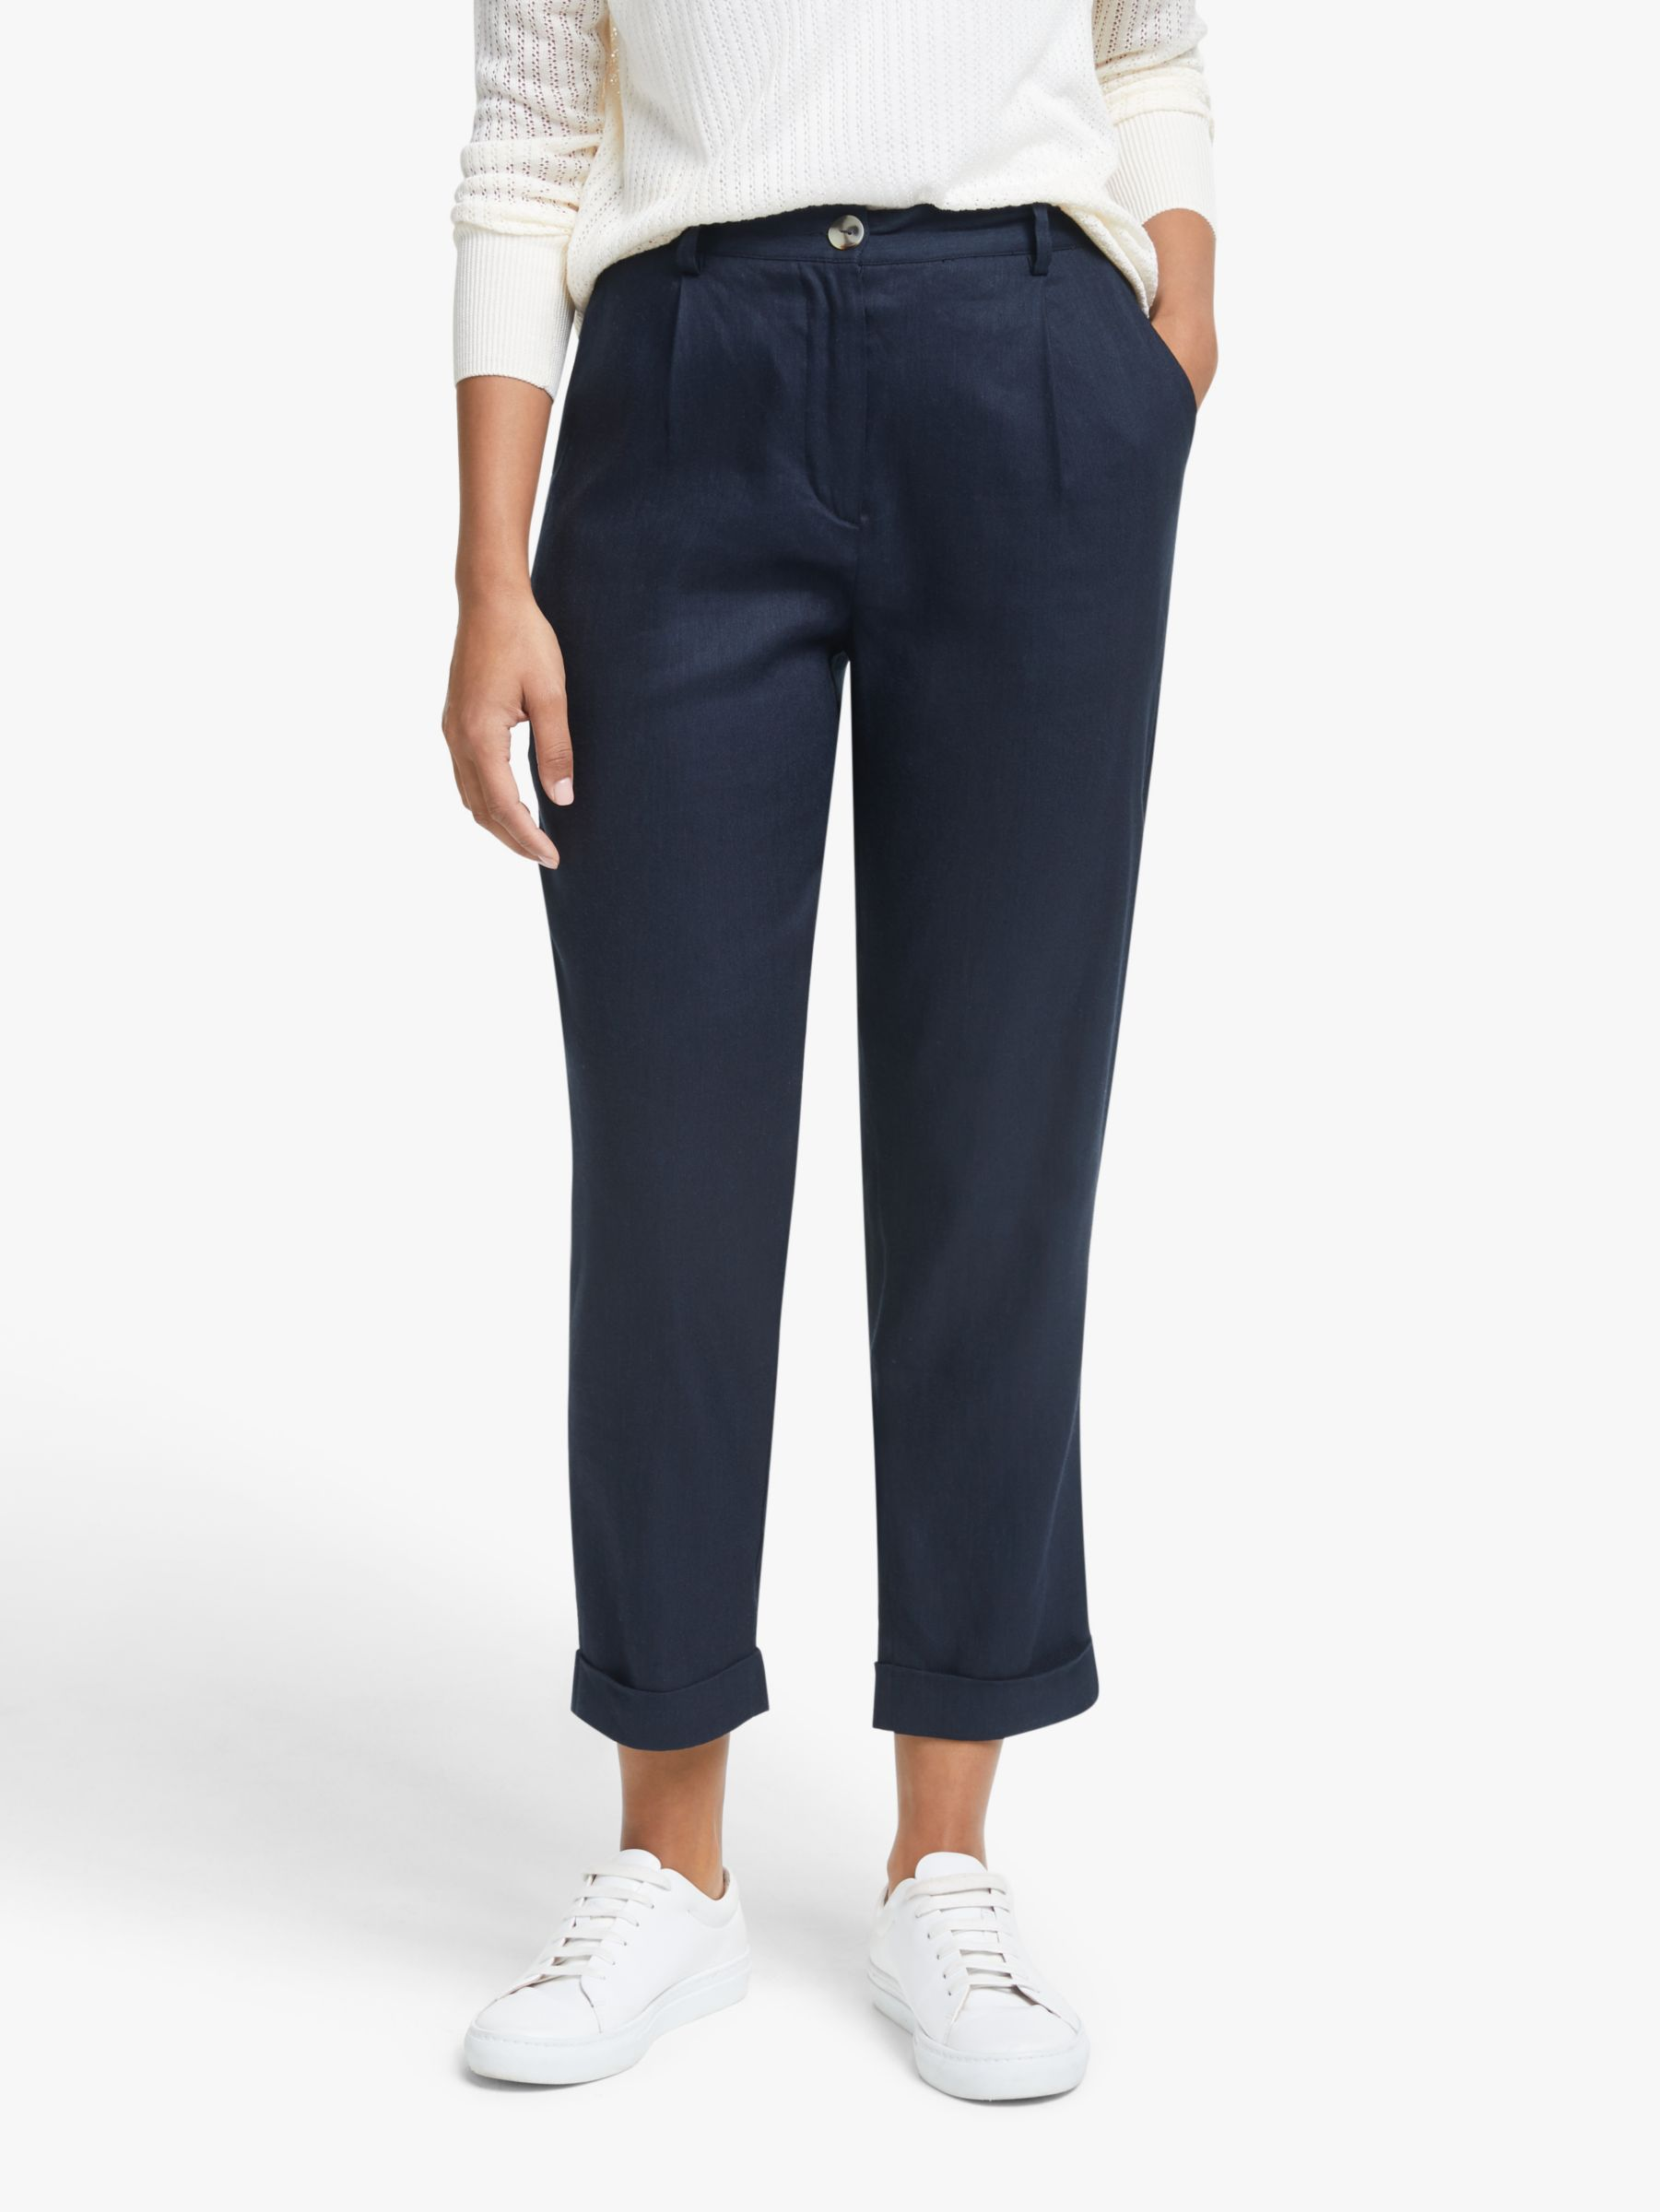 Numph Numph Arianell Trousers, Sapphire